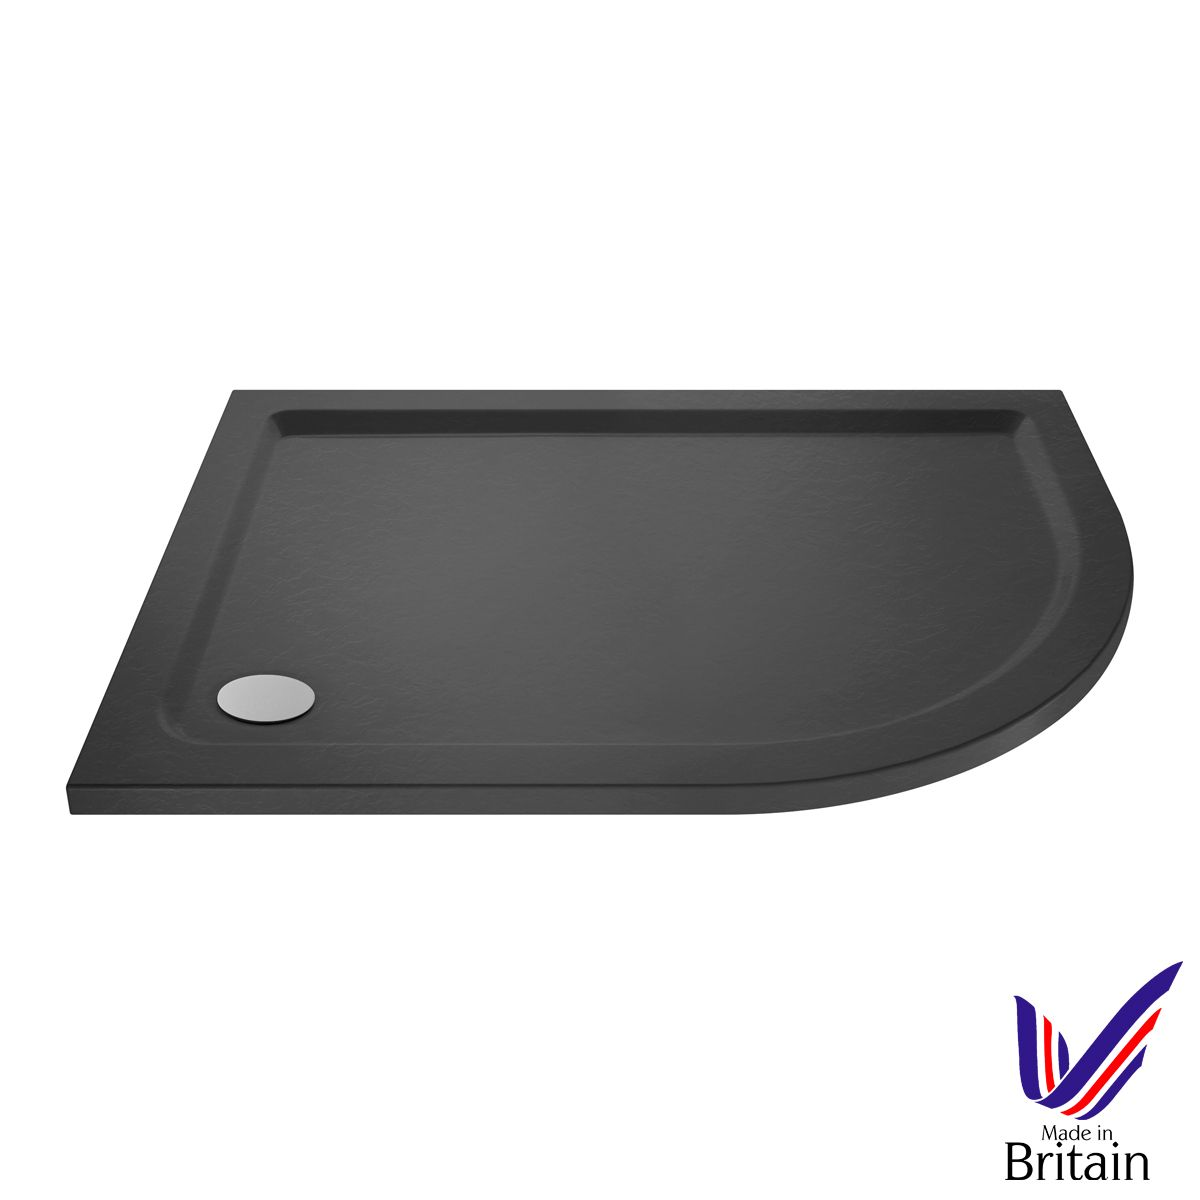 1200 x 900 Shower Tray Slate Grey Offset Quadrant Low Profile Right Hand by Pearlstone